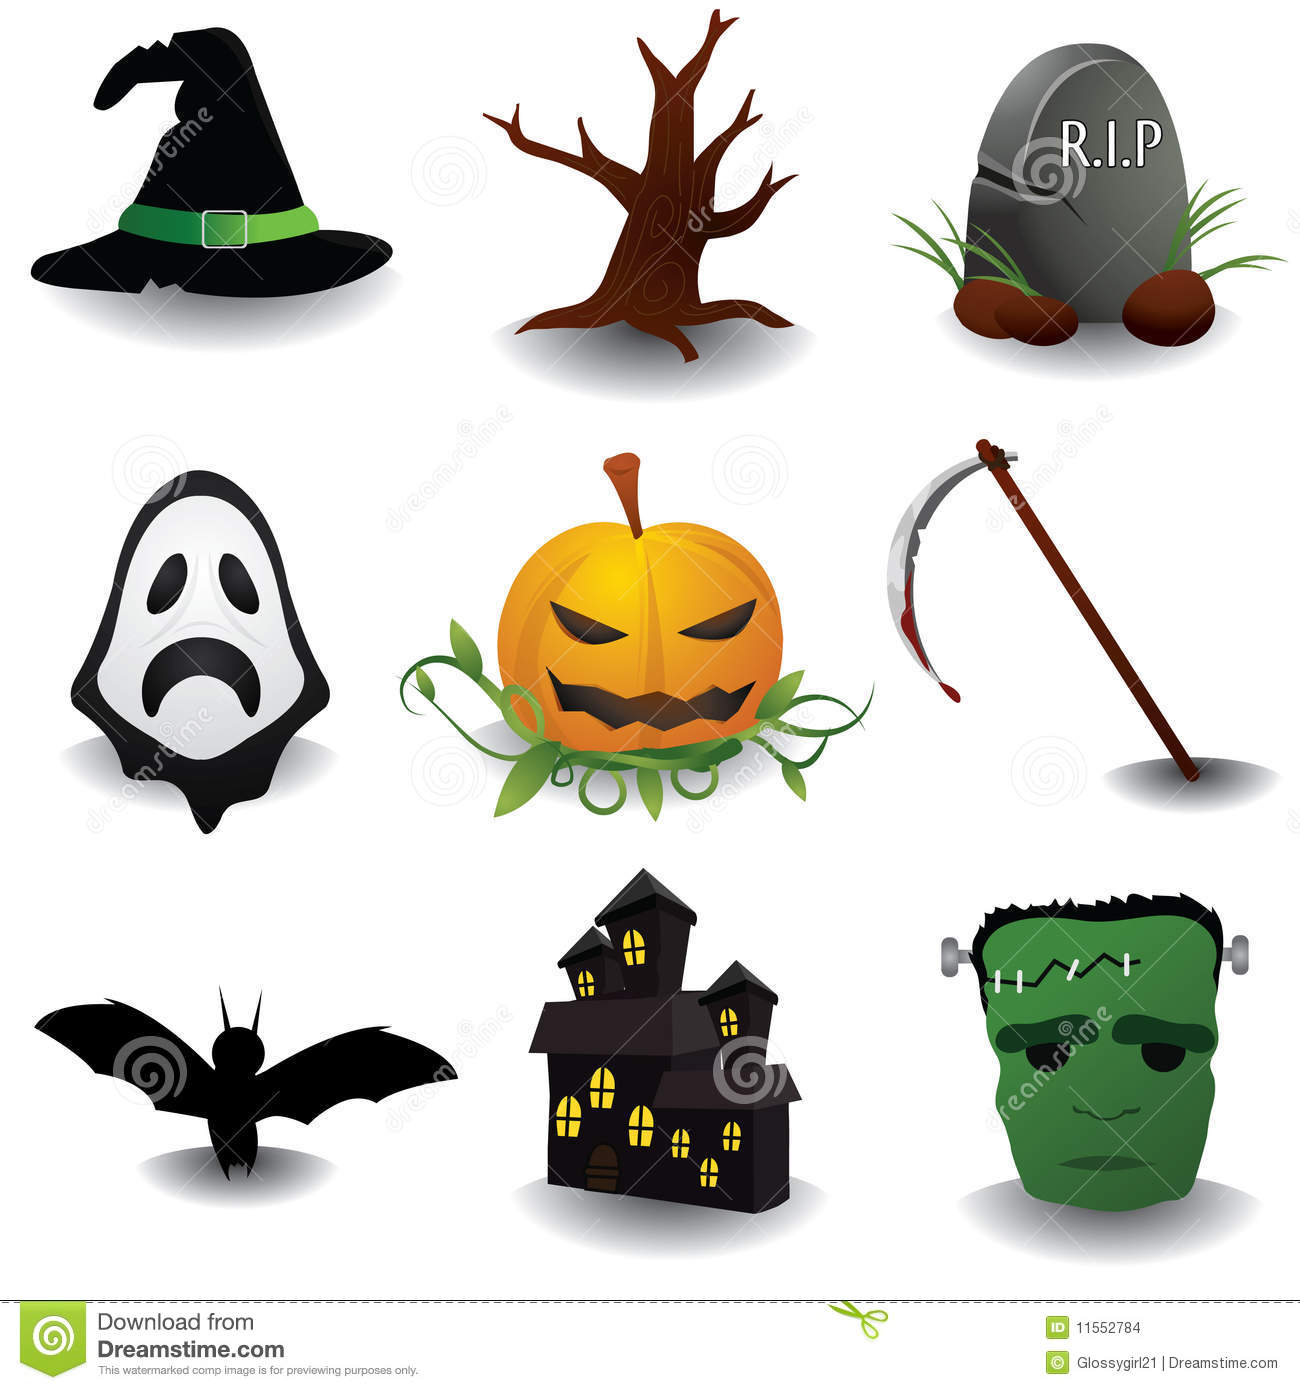 Oggetti Di Halloween.Halloween Objects Stock Illustration Illustration Of Reaper 11552784